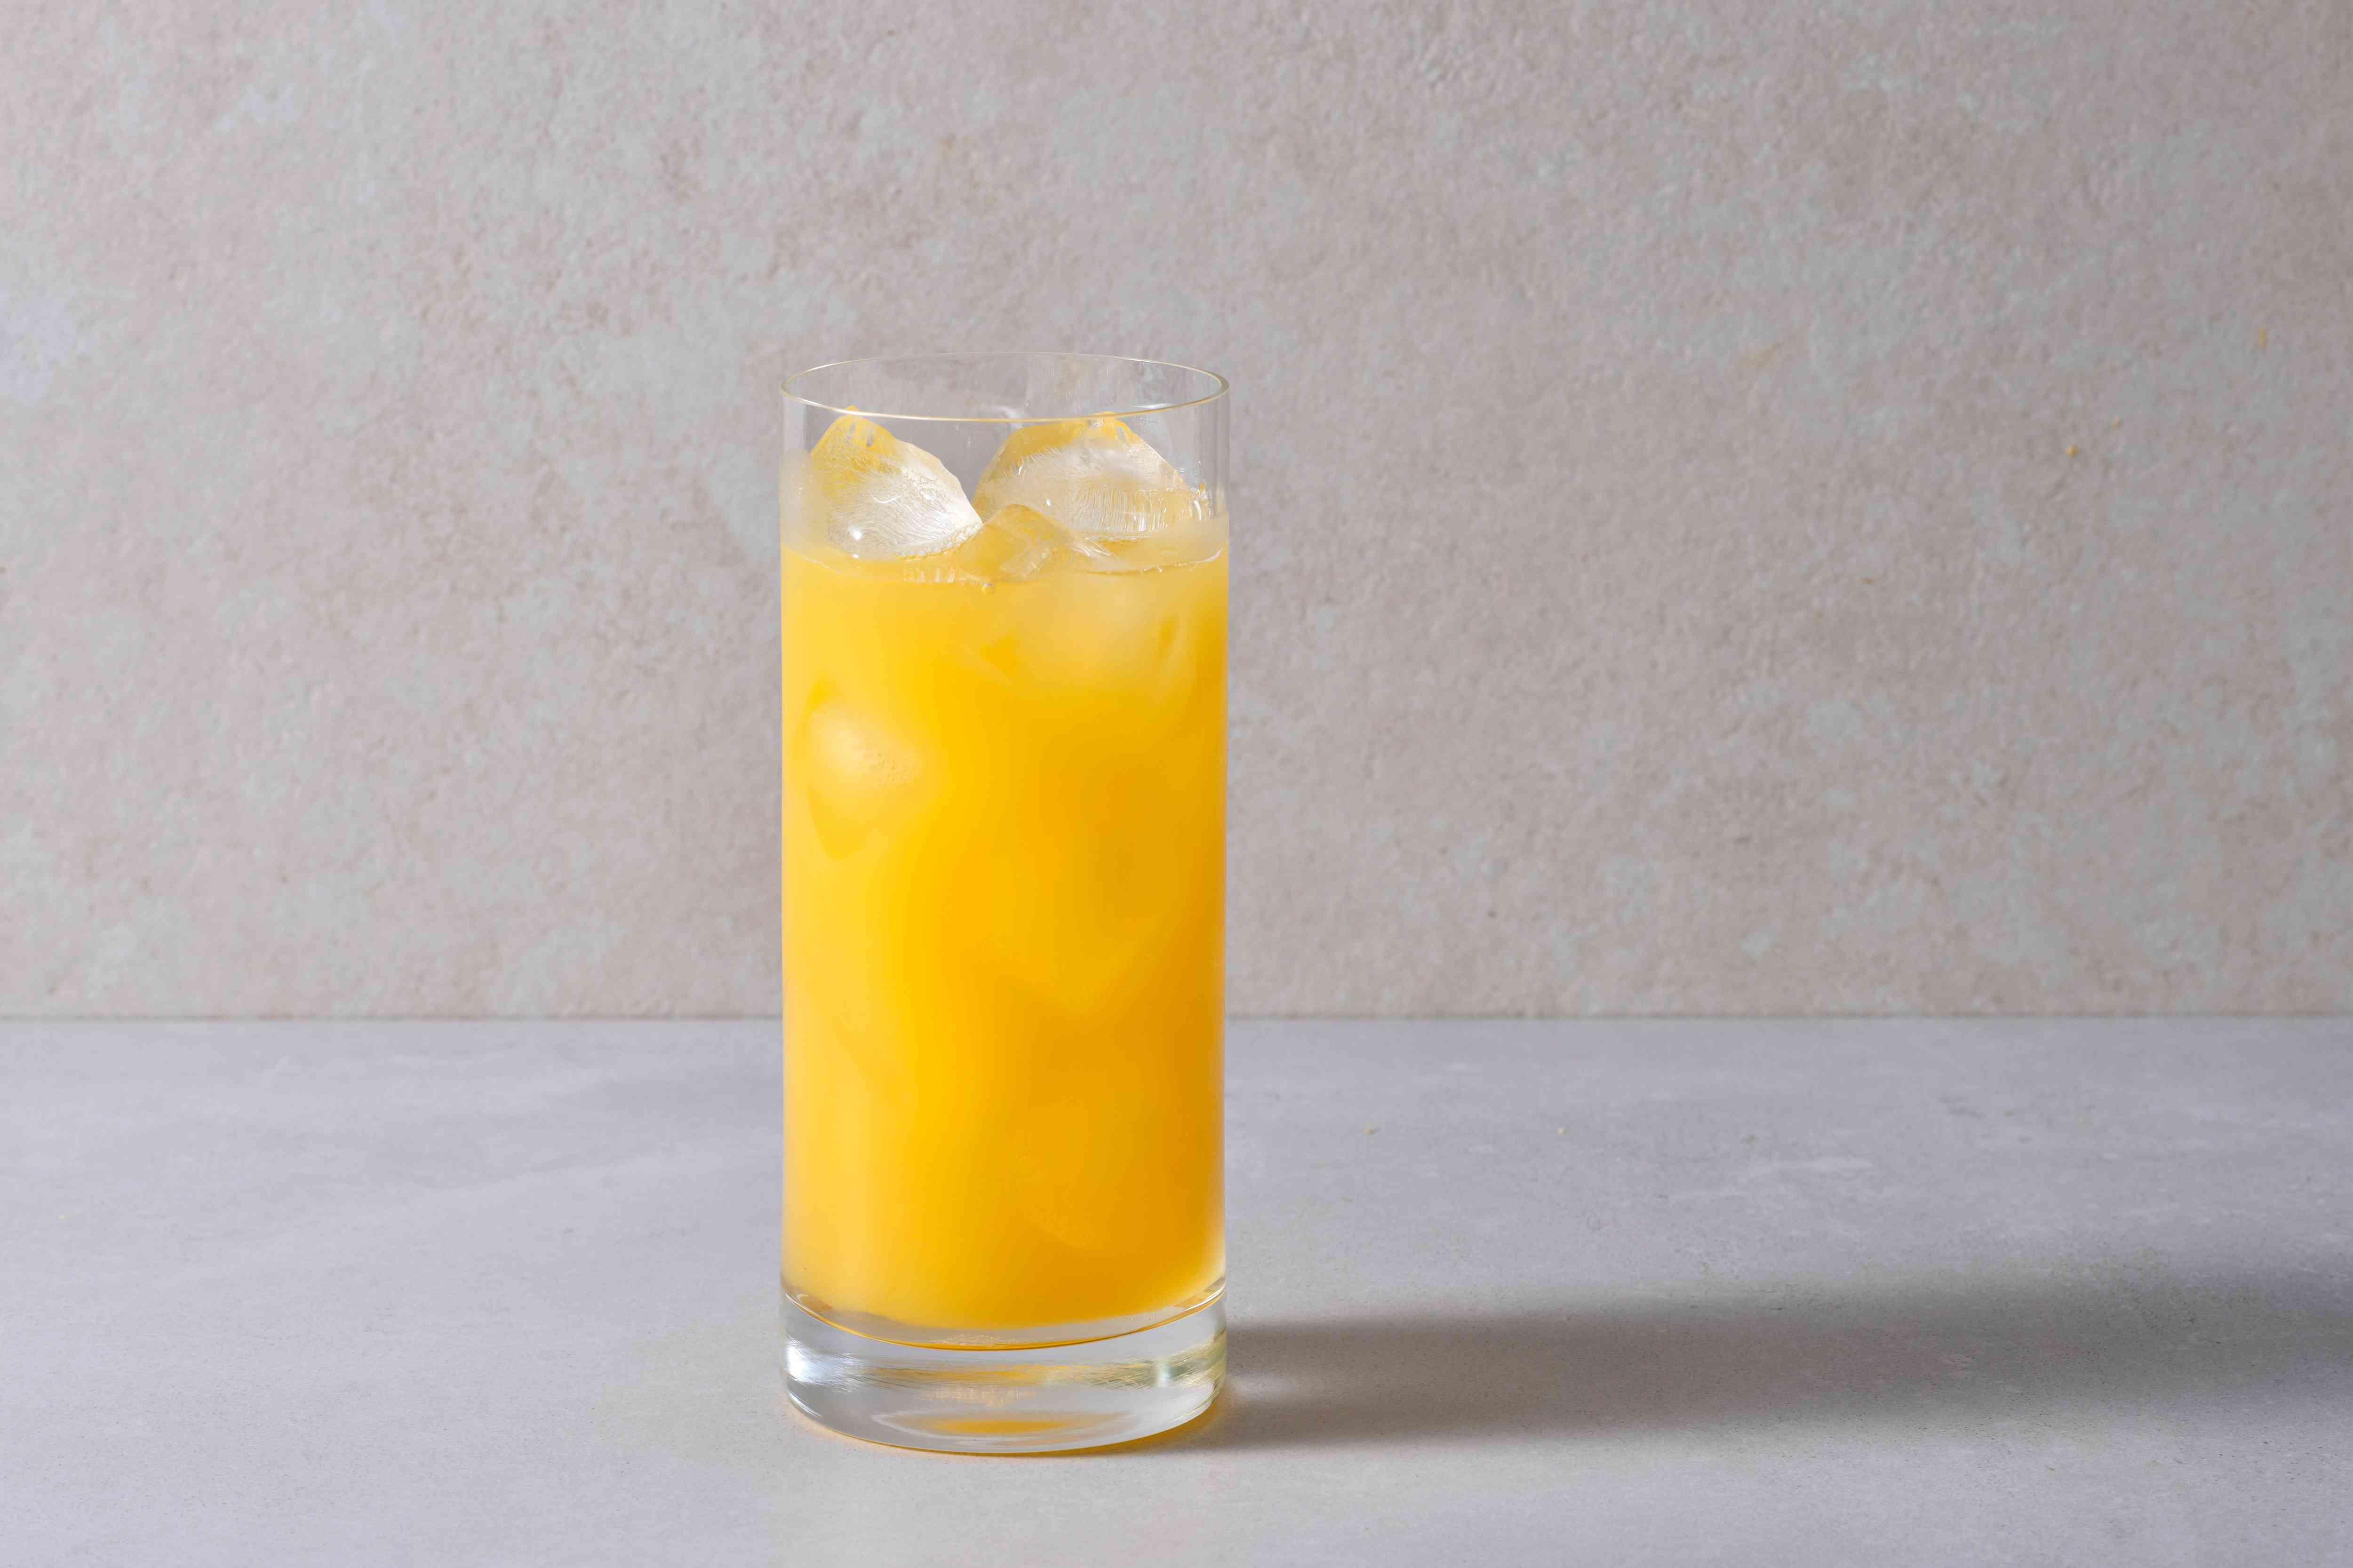 Pour the vodka, amaretto, and orange juice into a tall Collins glass filled with ice